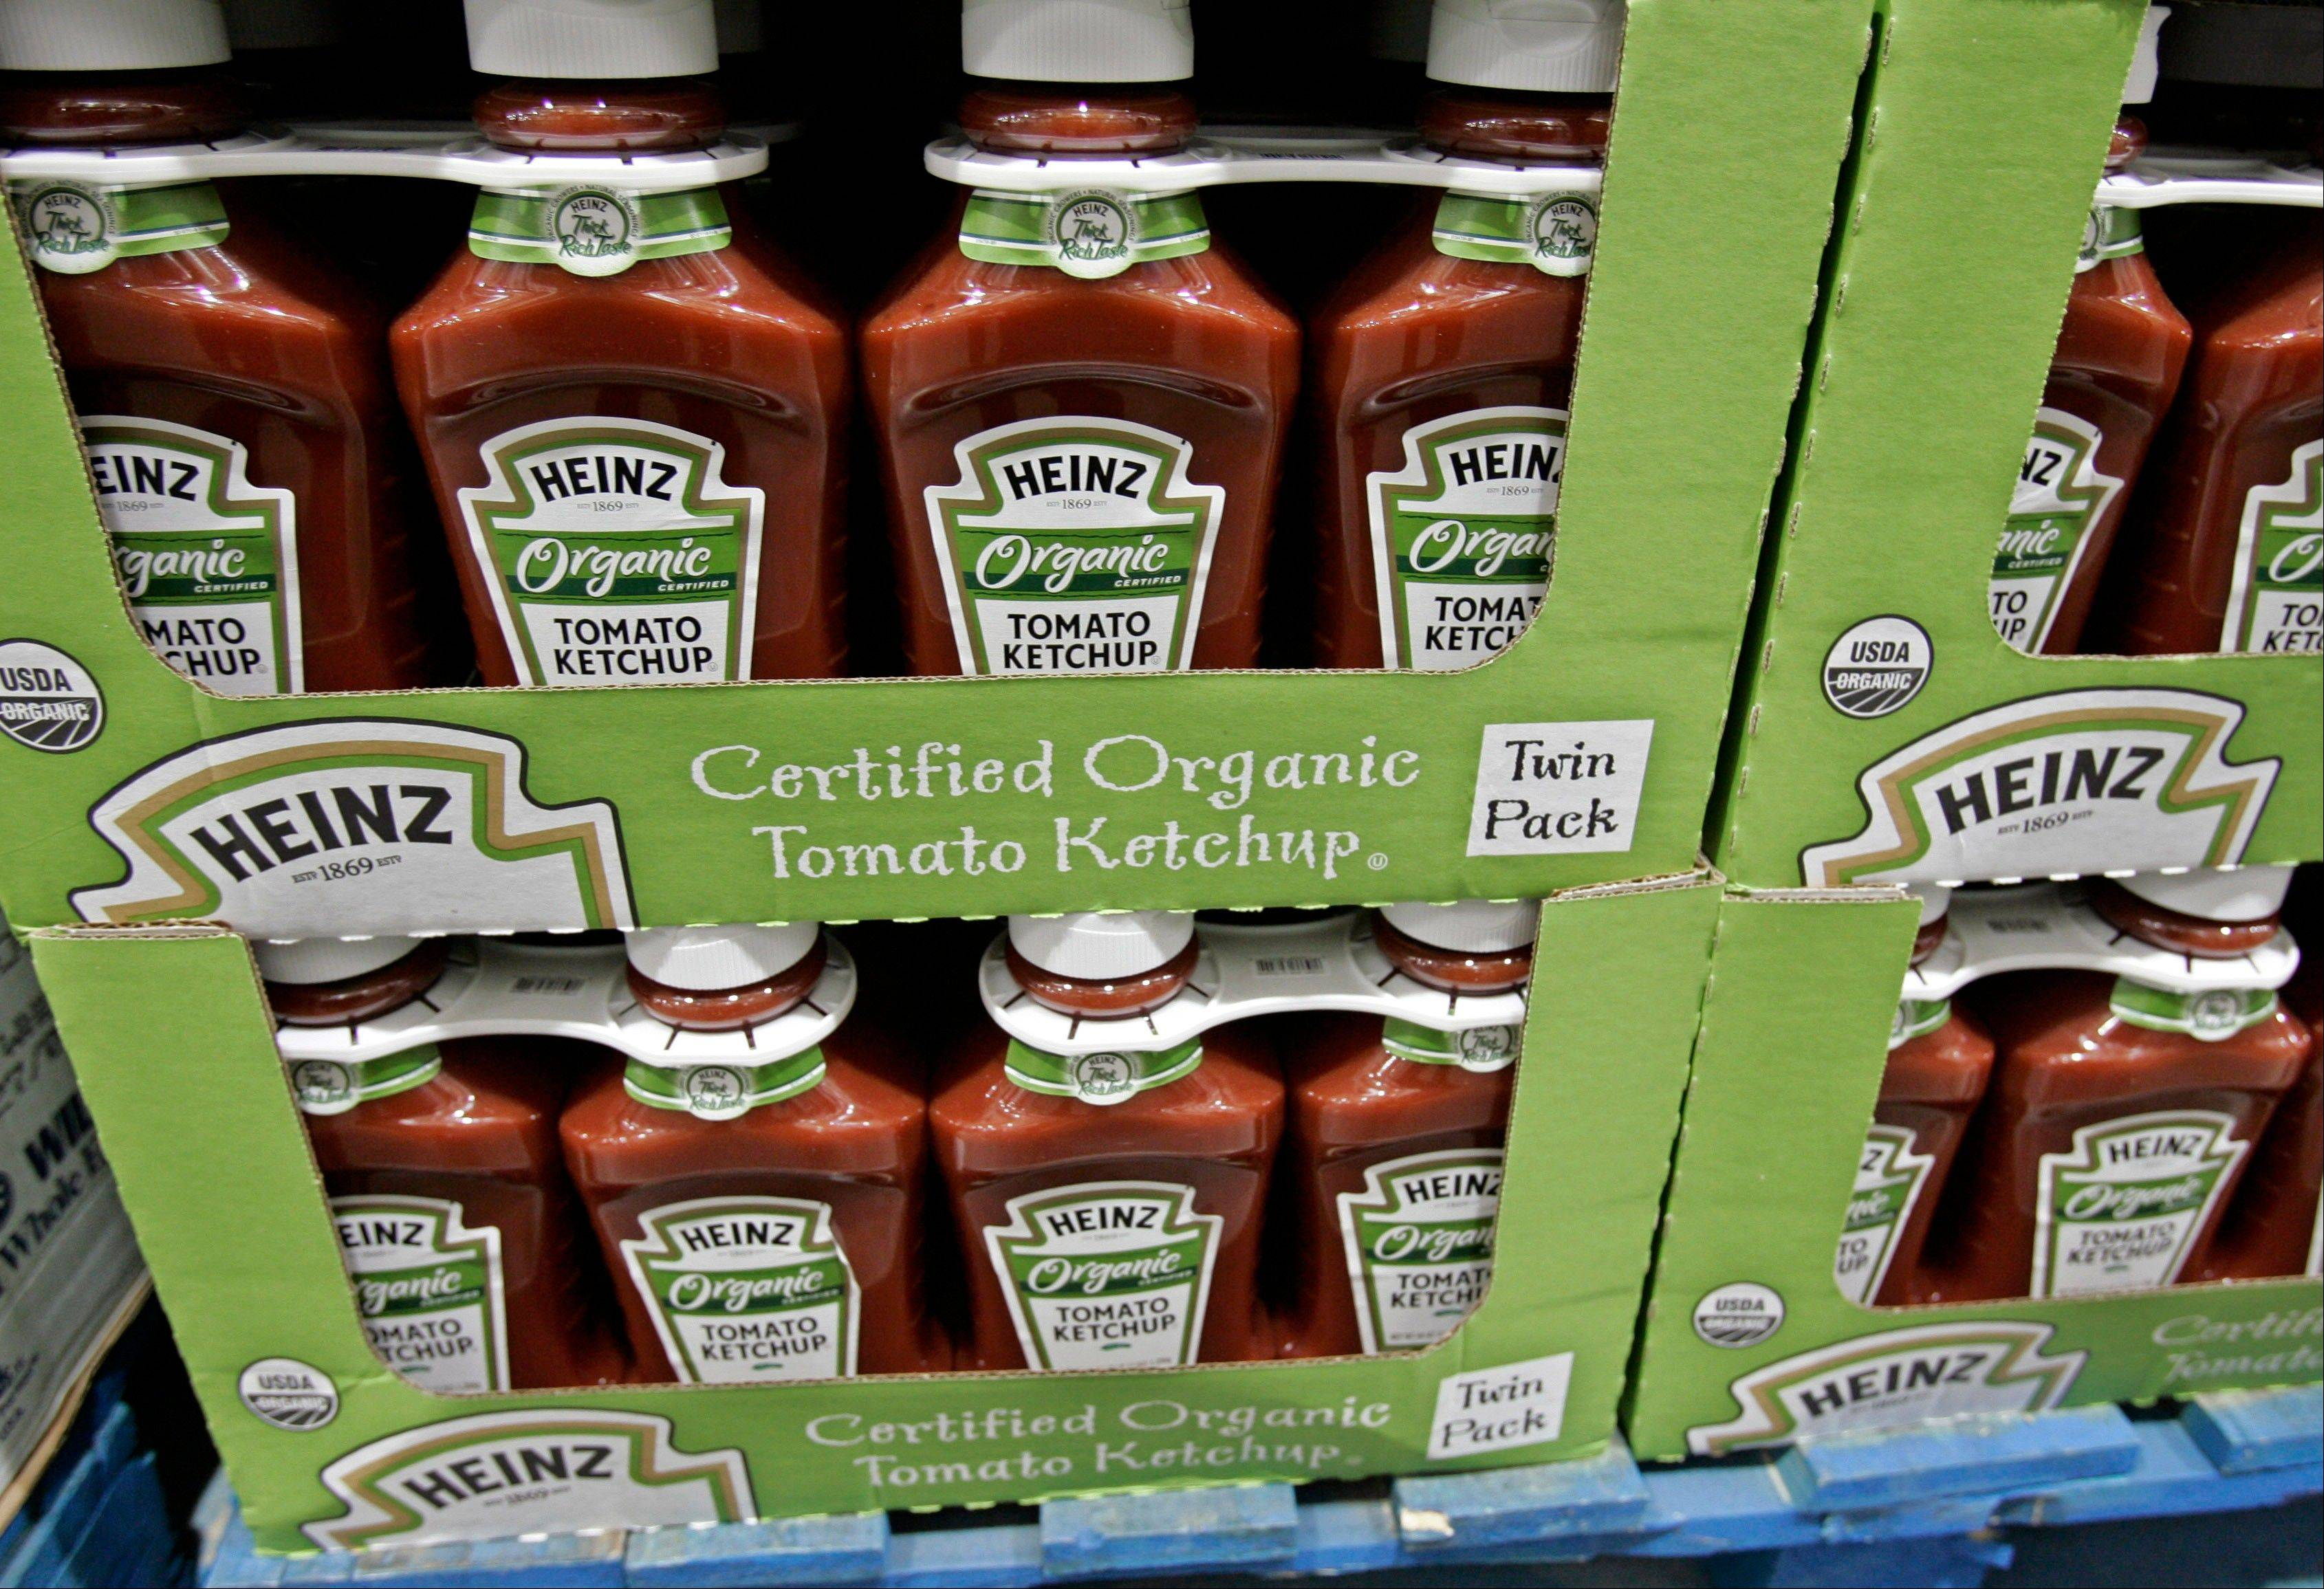 Bottles of Heinz organic tomato ketchup on display inside Costco in Mountain View, Calif. The organic industry is gaining clout on Capitol Hill, prompted by rising consumer demand and its entry into traditional farm states.